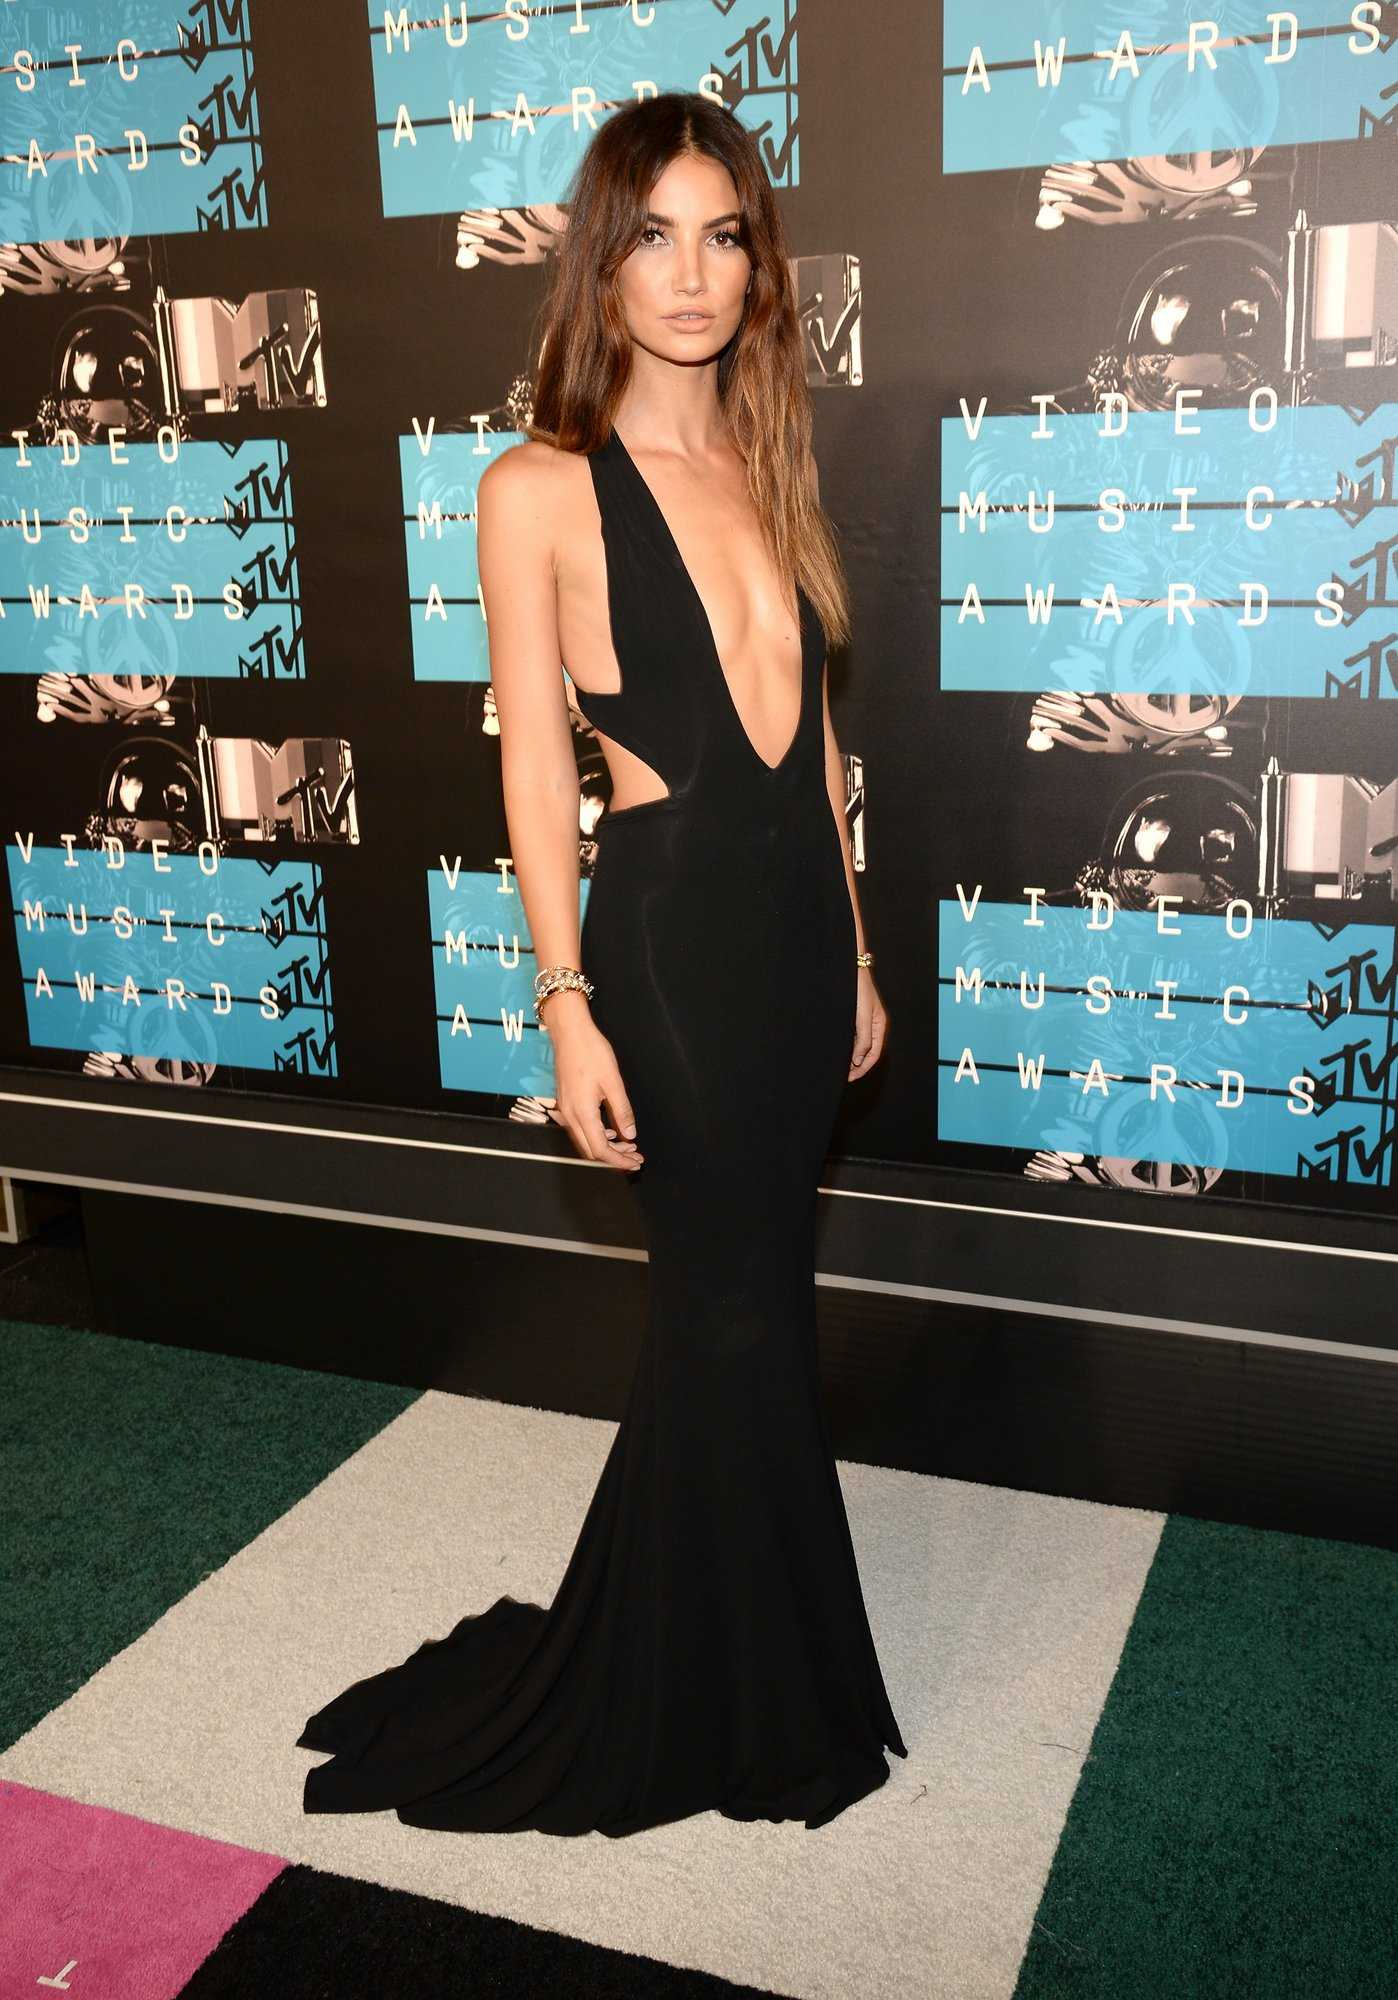 Chrissy Picks Her Favorite Looks From The VMAs | VMAs